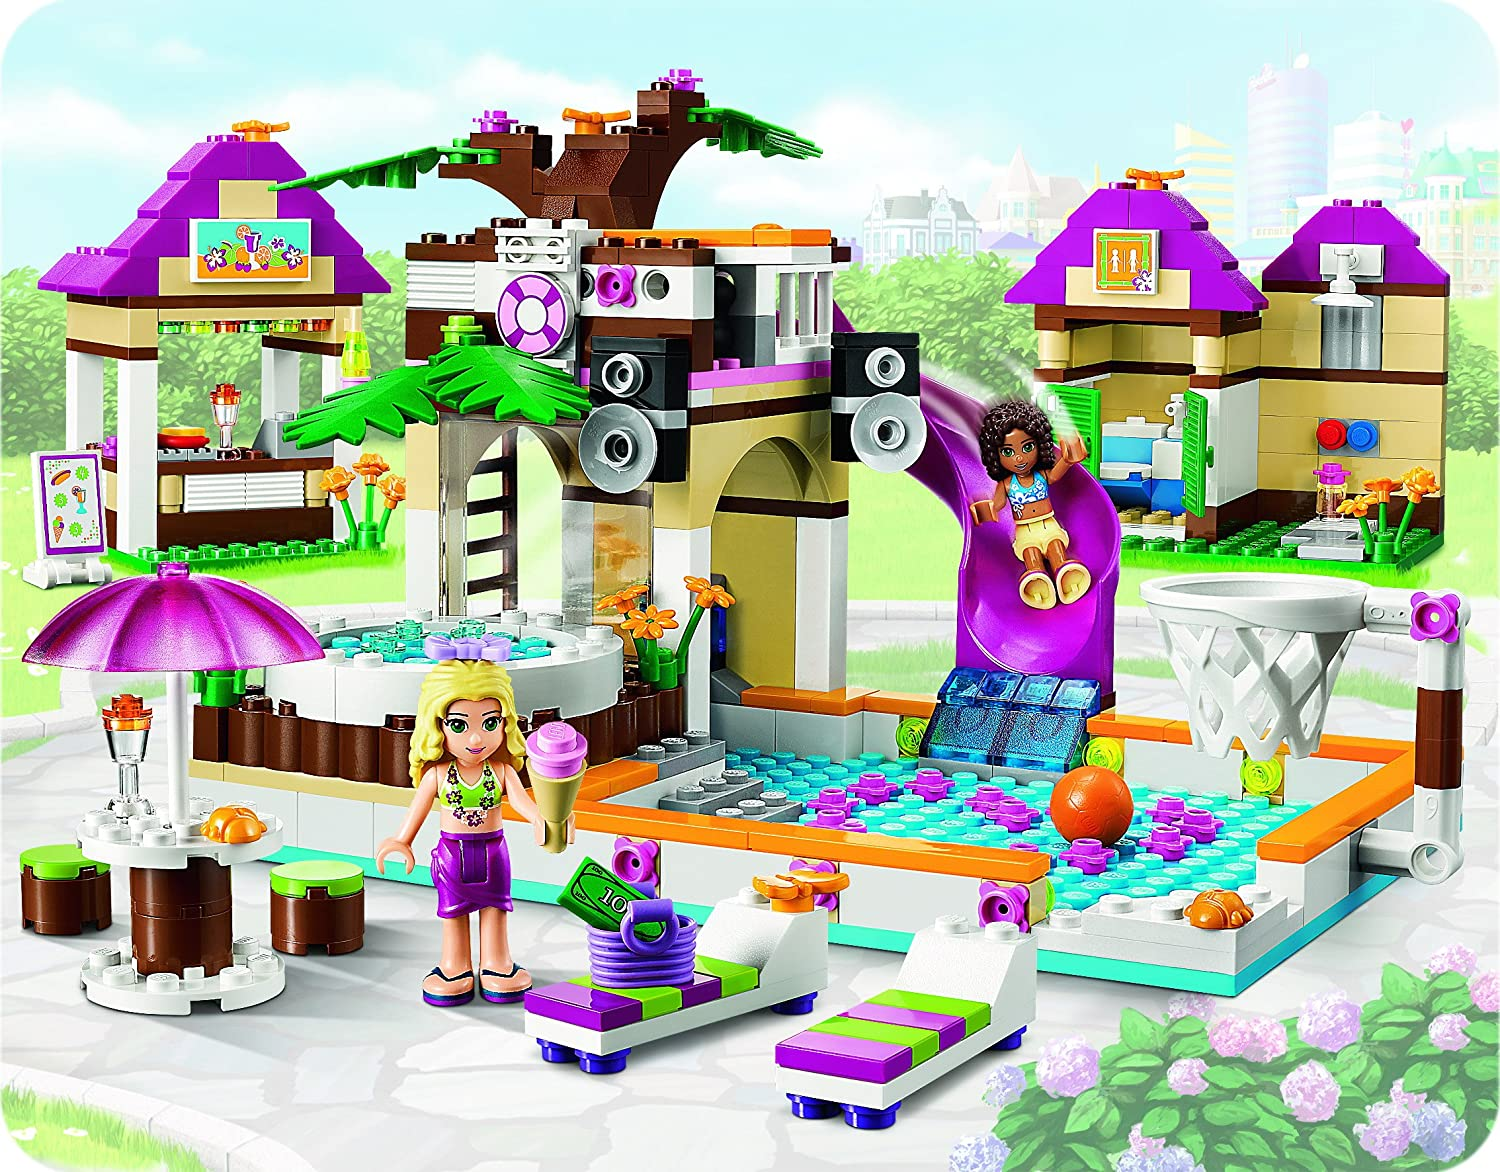 Lego Friends Piscina Comment Construire La Piscine Lego Friends La Réponse